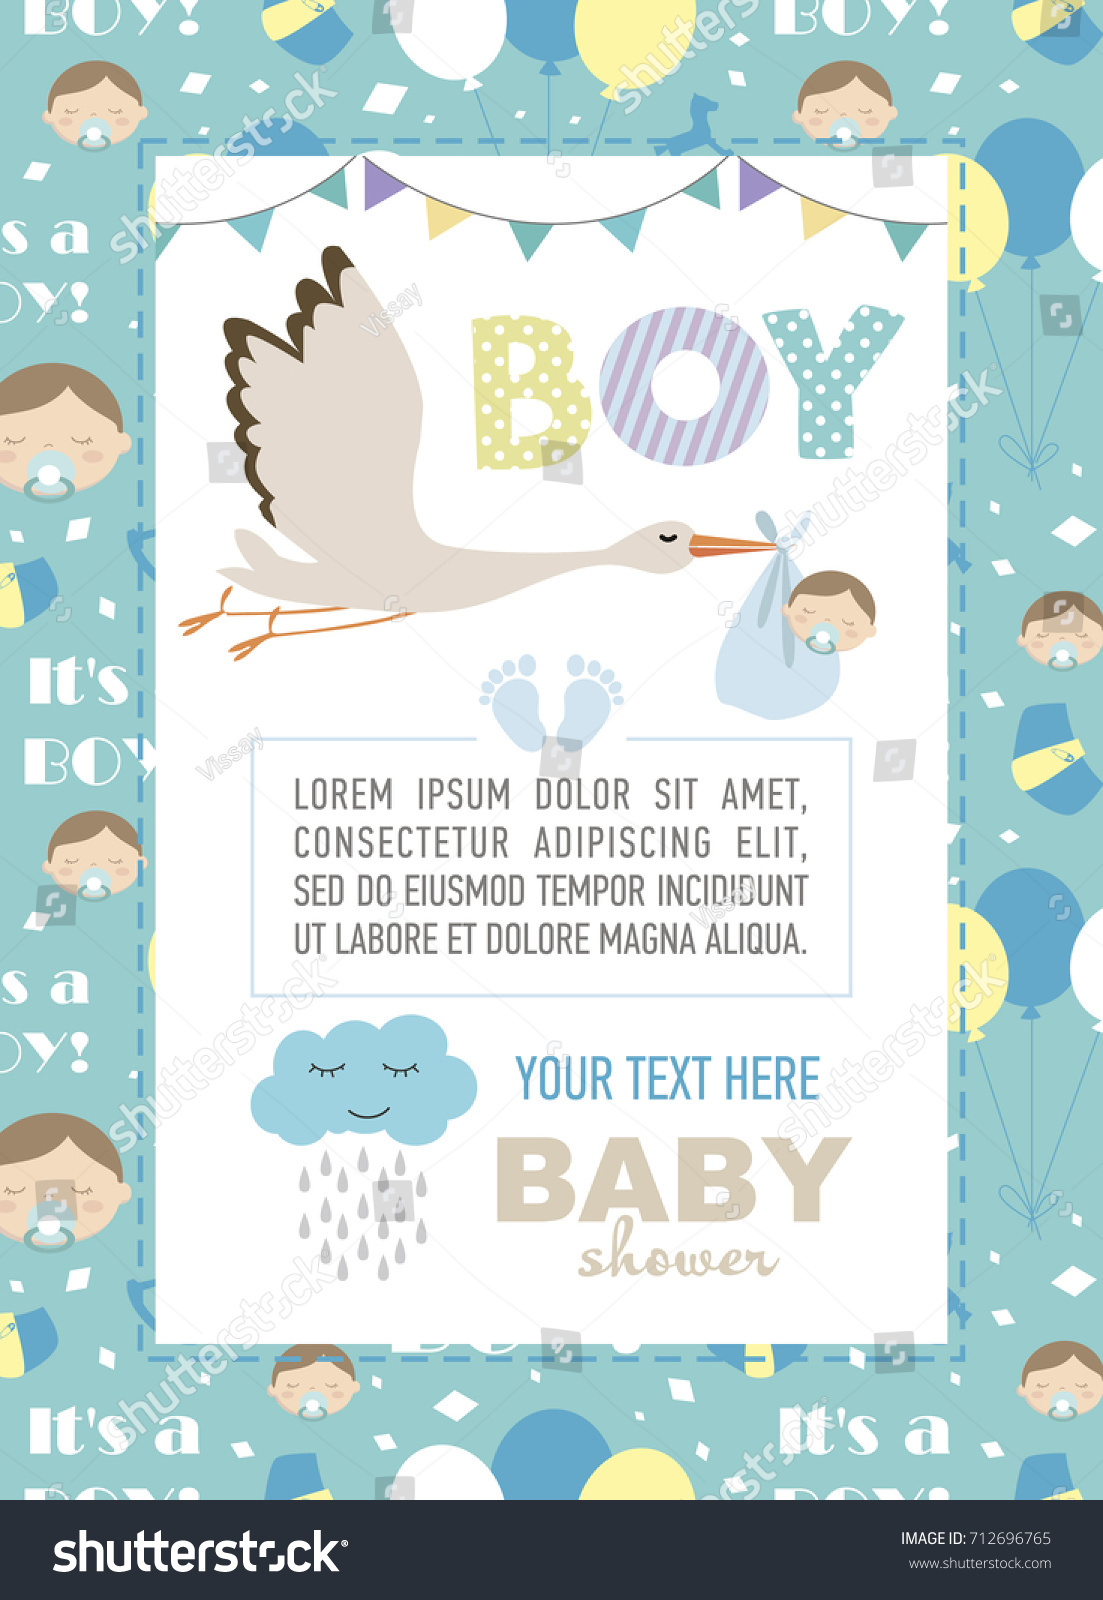 Cute Baby Shower Invitation Card Vector Wektorowa Ilustracja